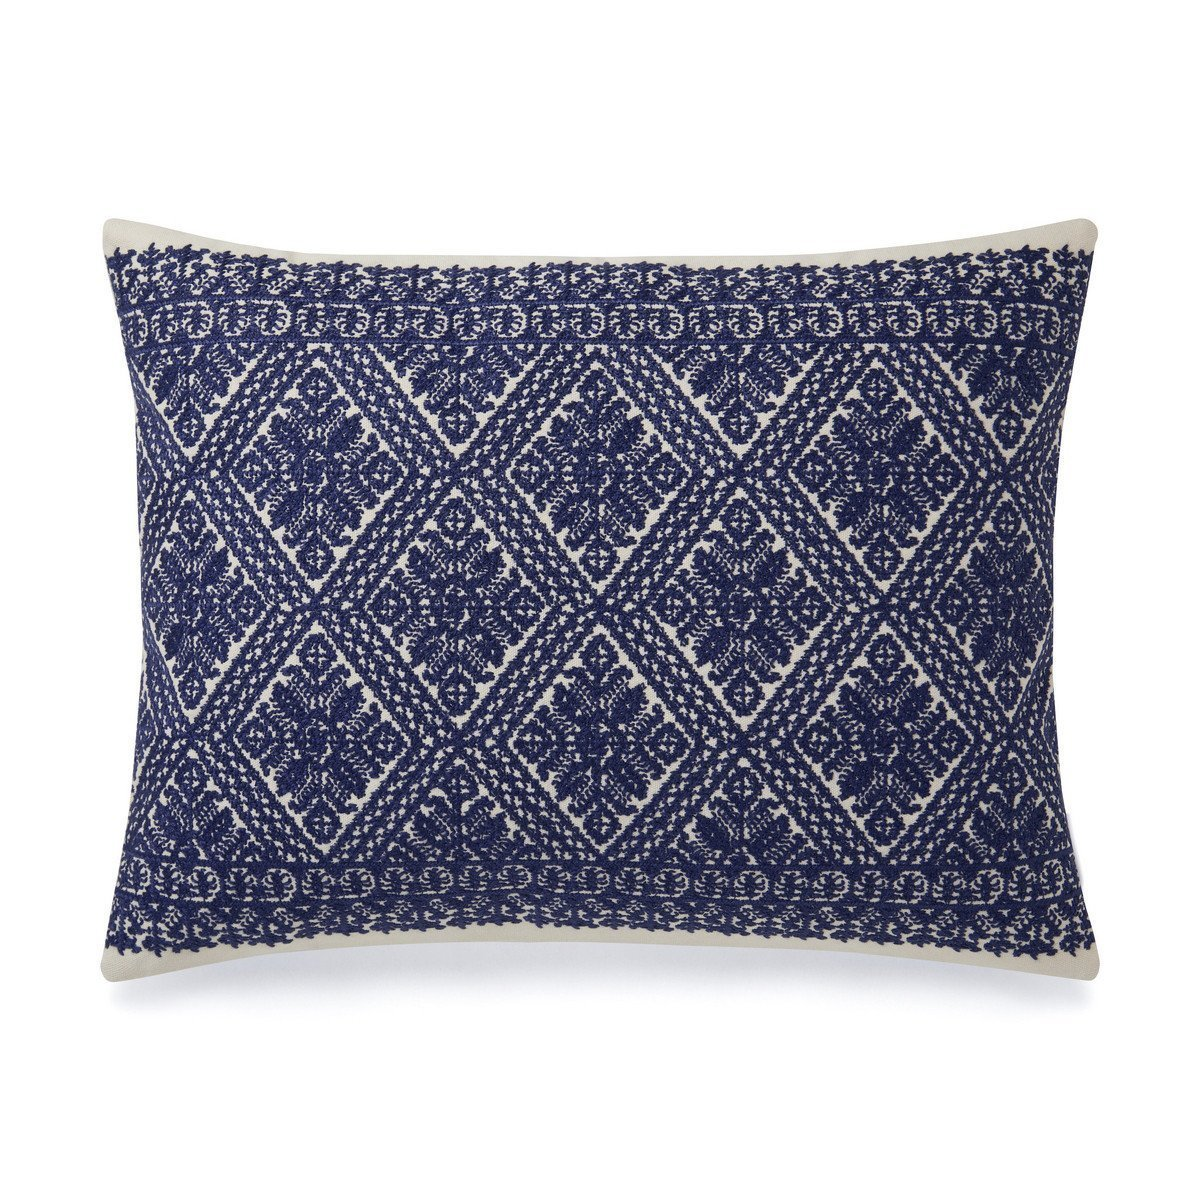 Cushion Cover Remy Haywood